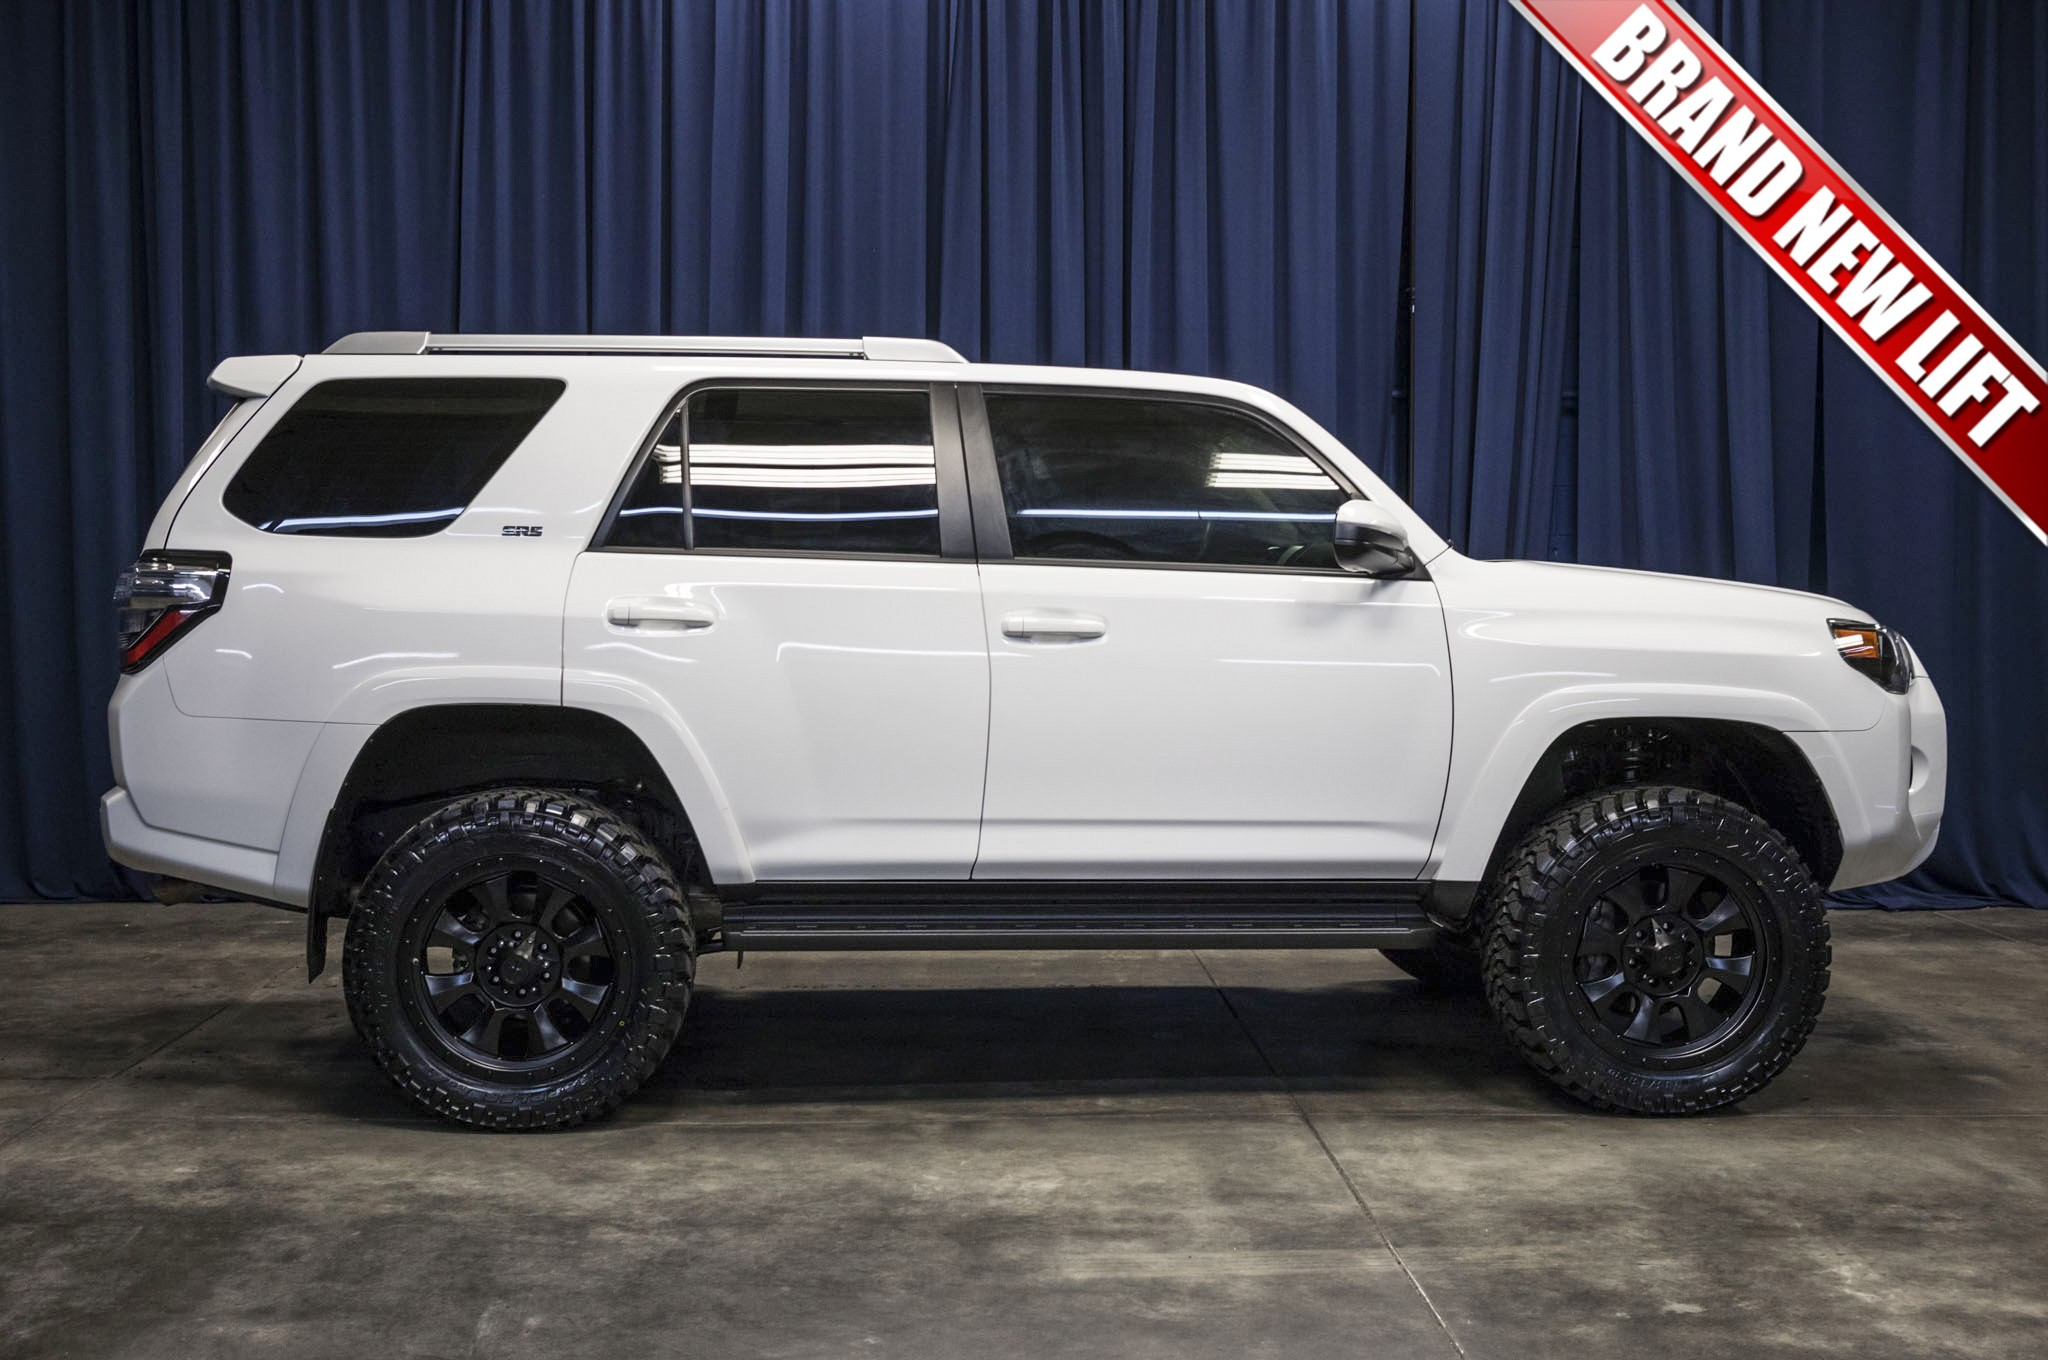 Used Diesel Trucks >> Used Lifted 2014 Toyota 4Runner SR5 4x4 SUV For Sale - 43009